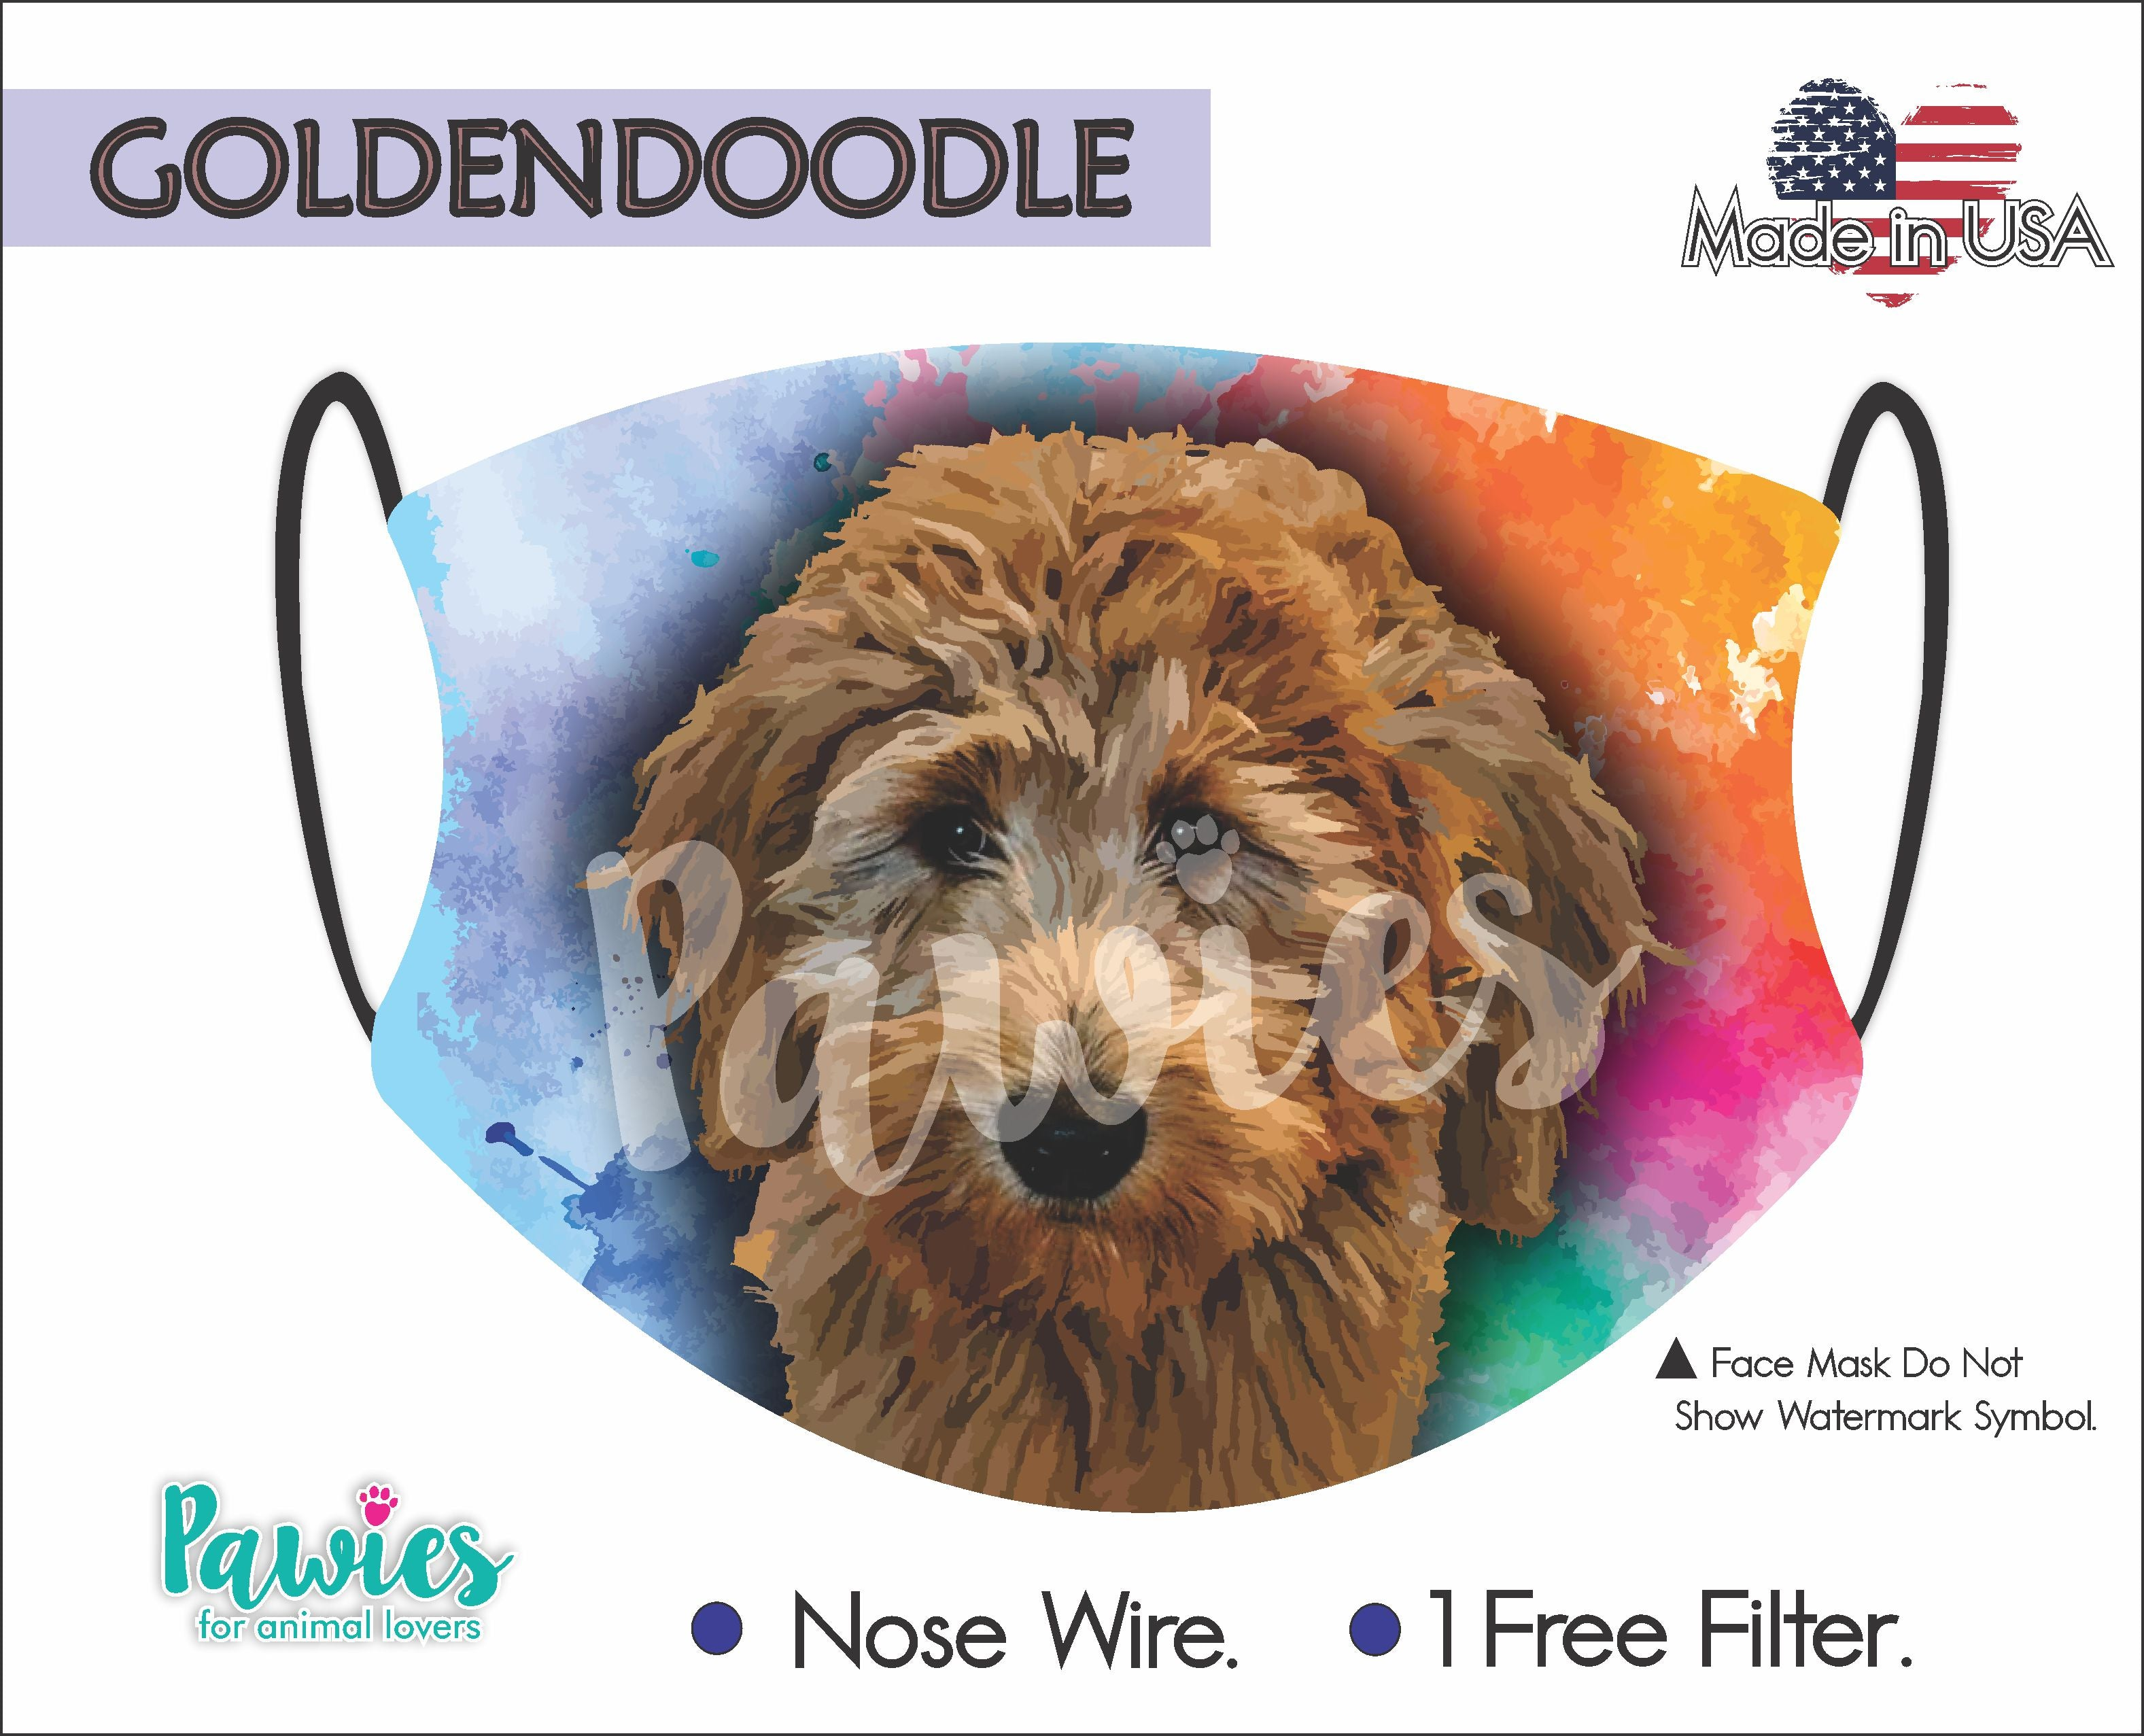 Goldendoodle Chocolate Face Mask